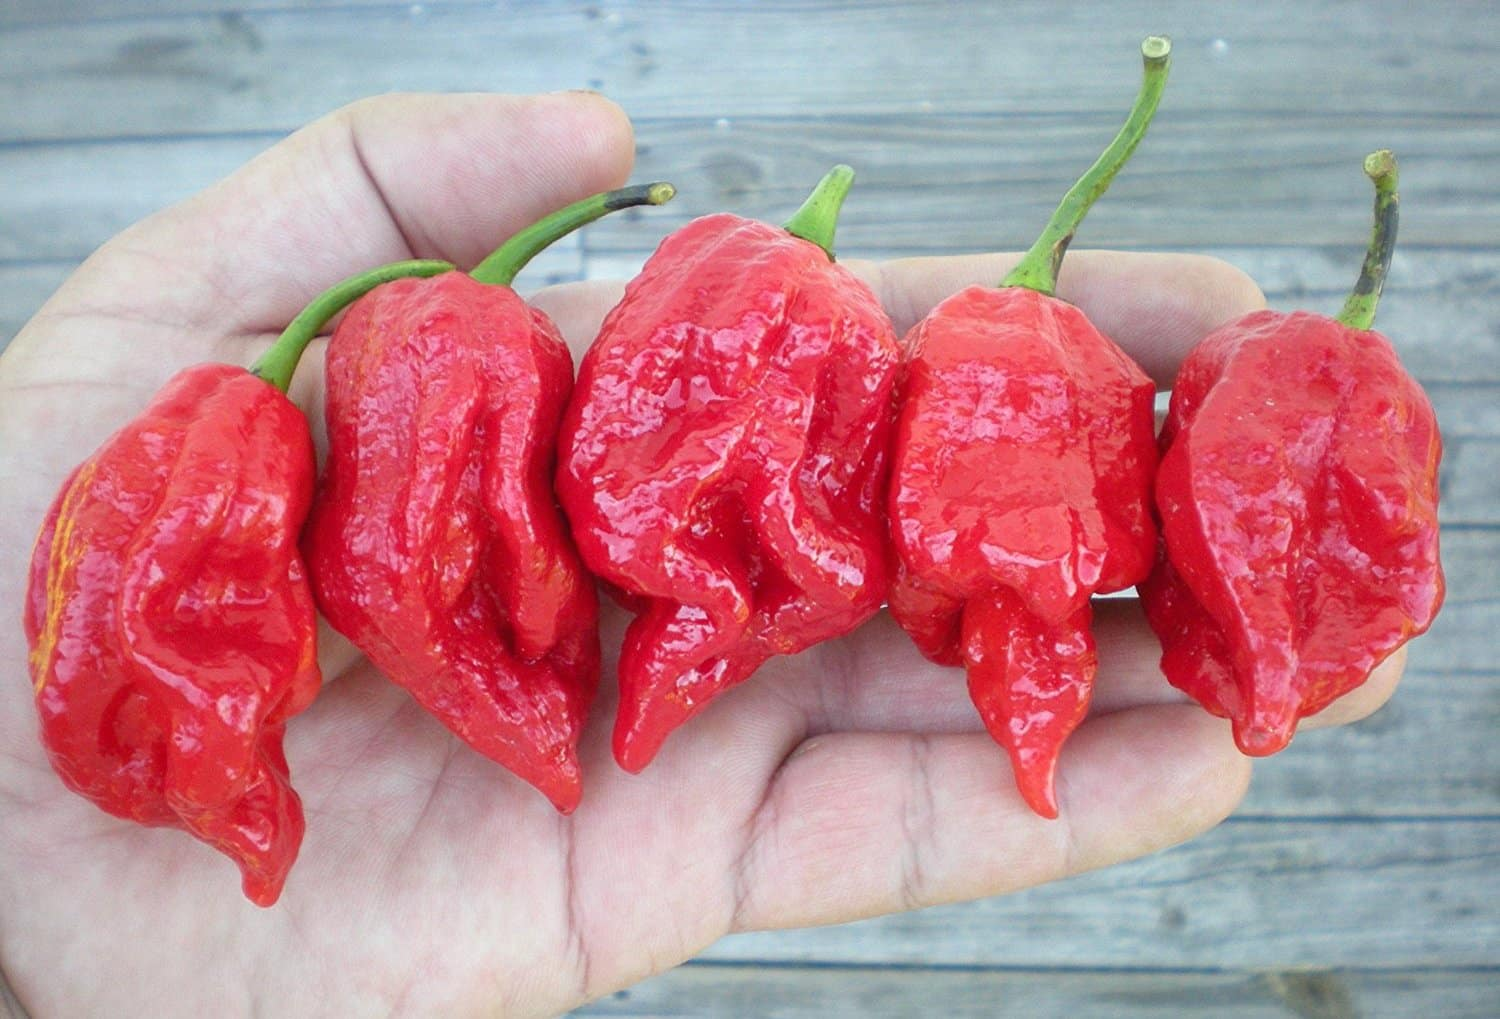 7 Pot Barrackpore: Big Spice